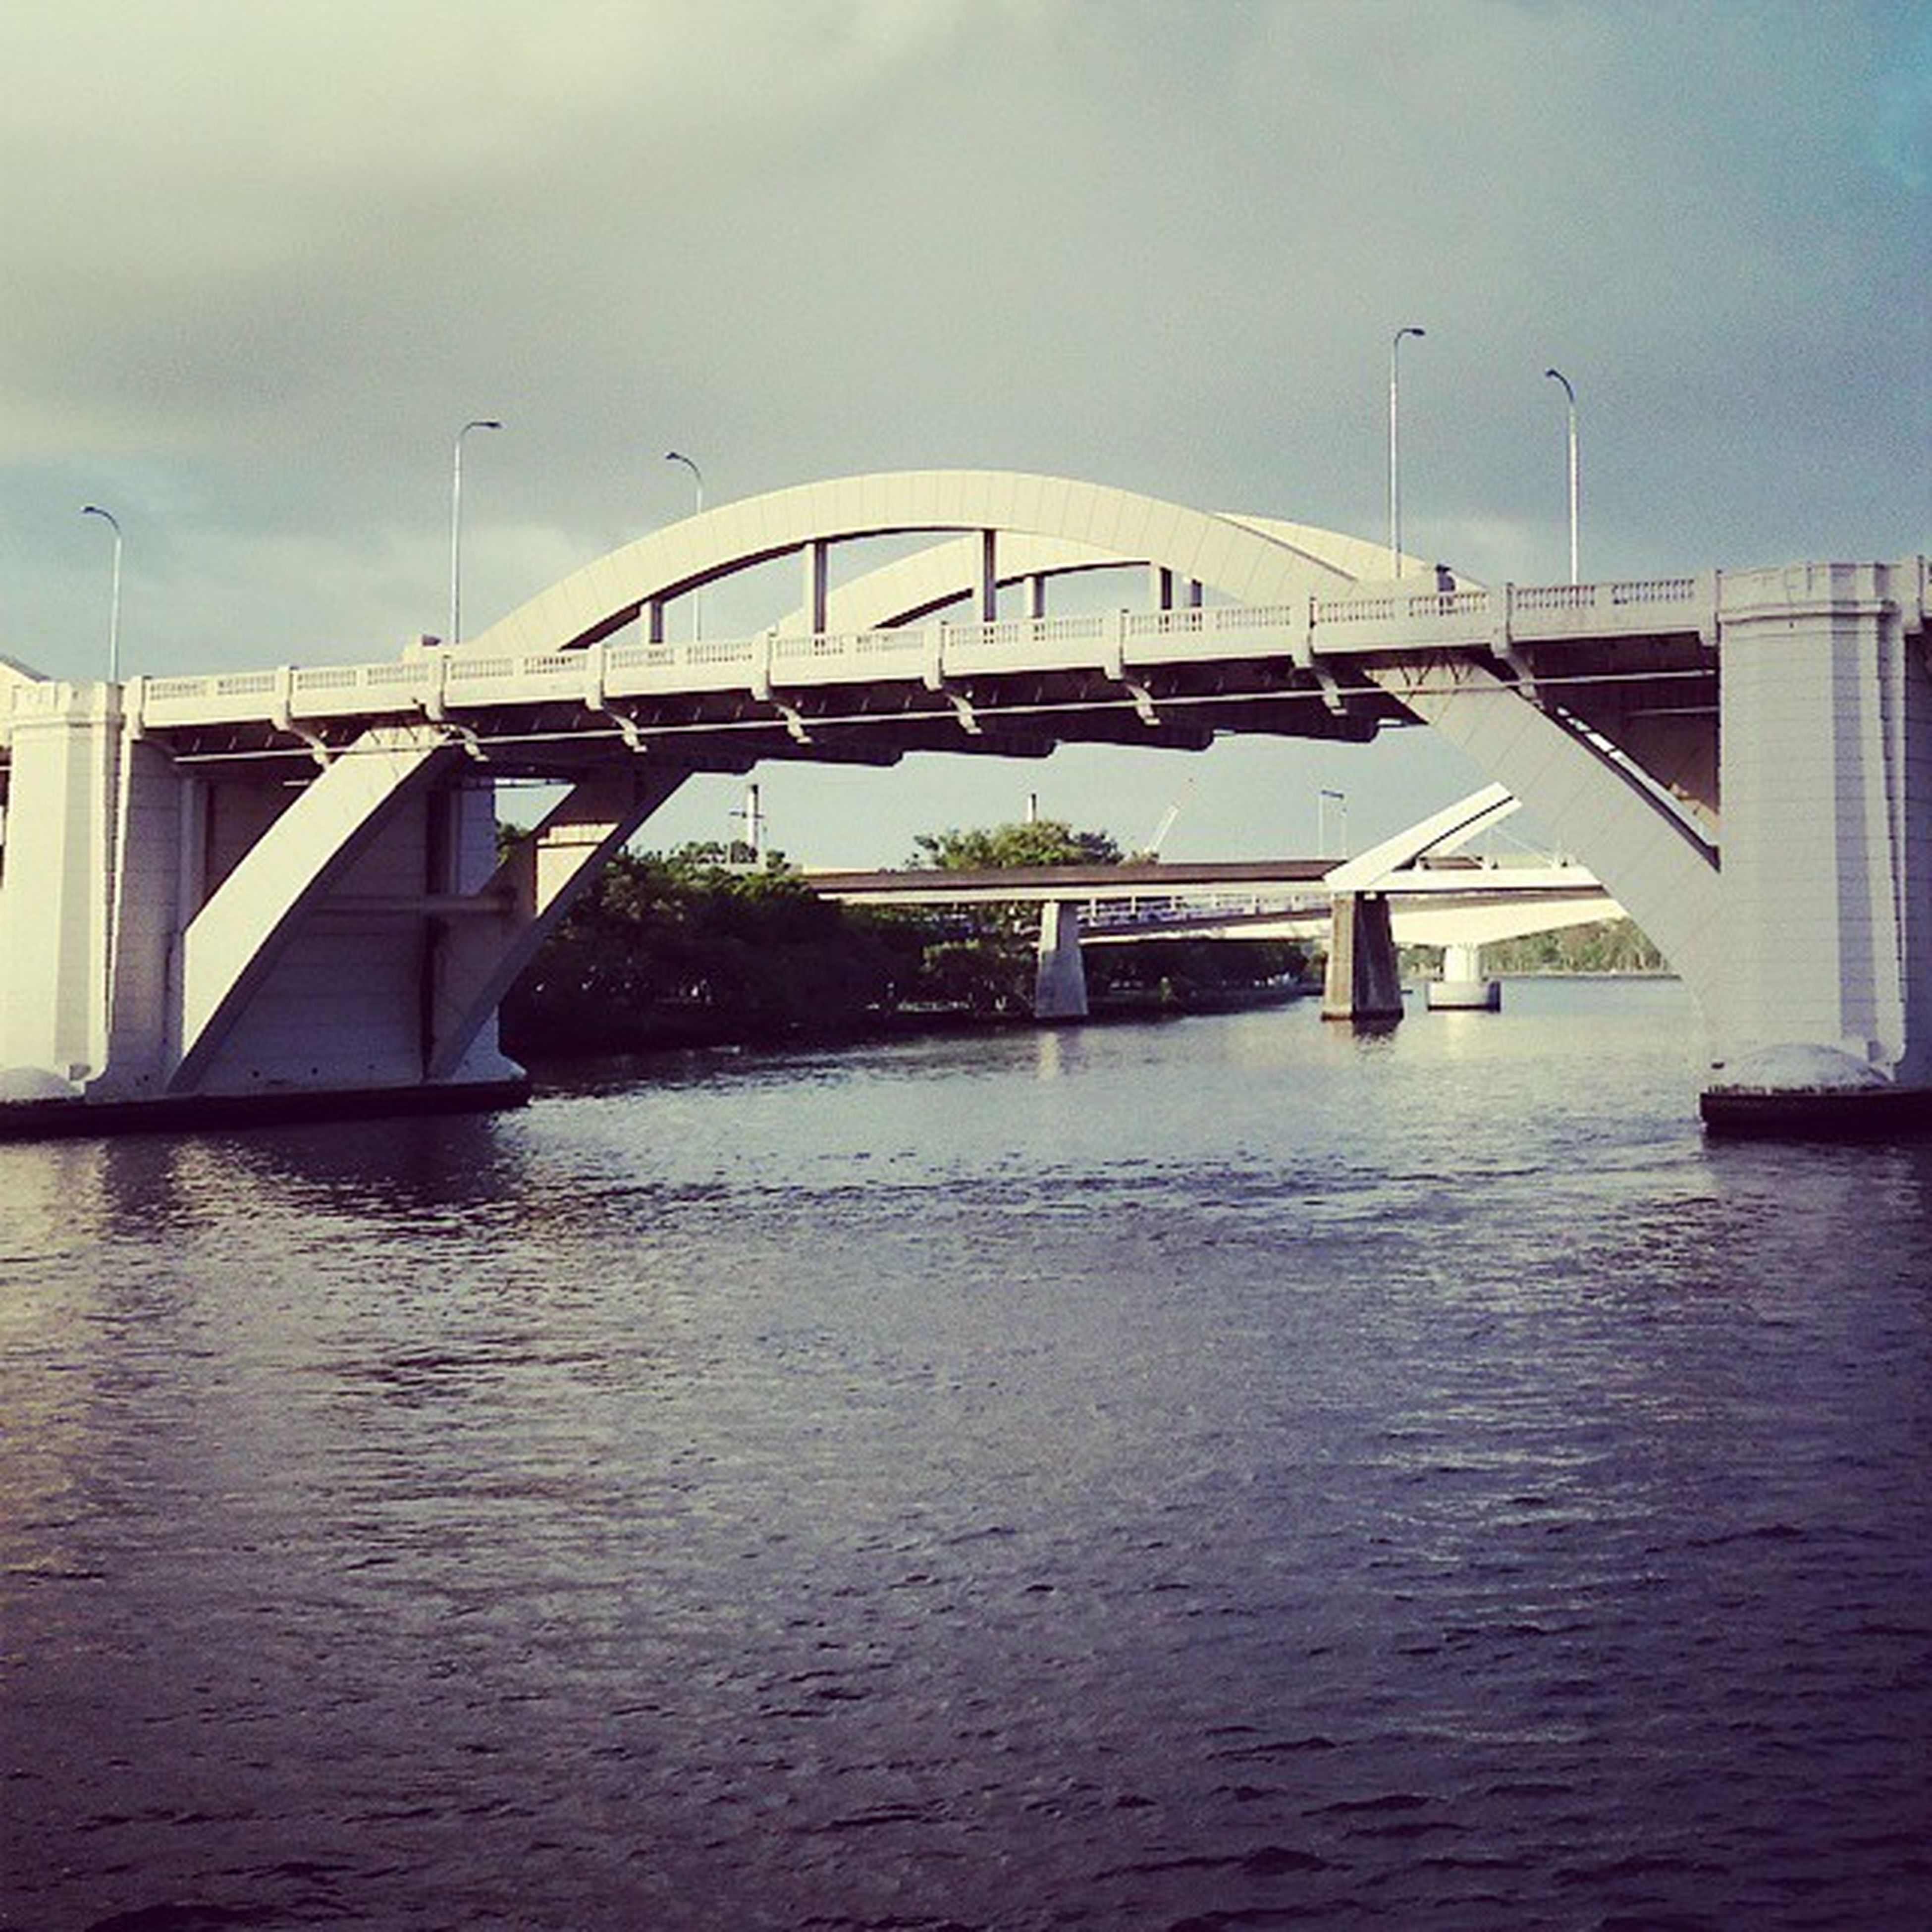 waterfront, water, built structure, architecture, sky, connection, bridge - man made structure, river, cloud - sky, transportation, bridge, building exterior, reflection, rippled, cloud, no people, nature, outdoors, day, cloudy